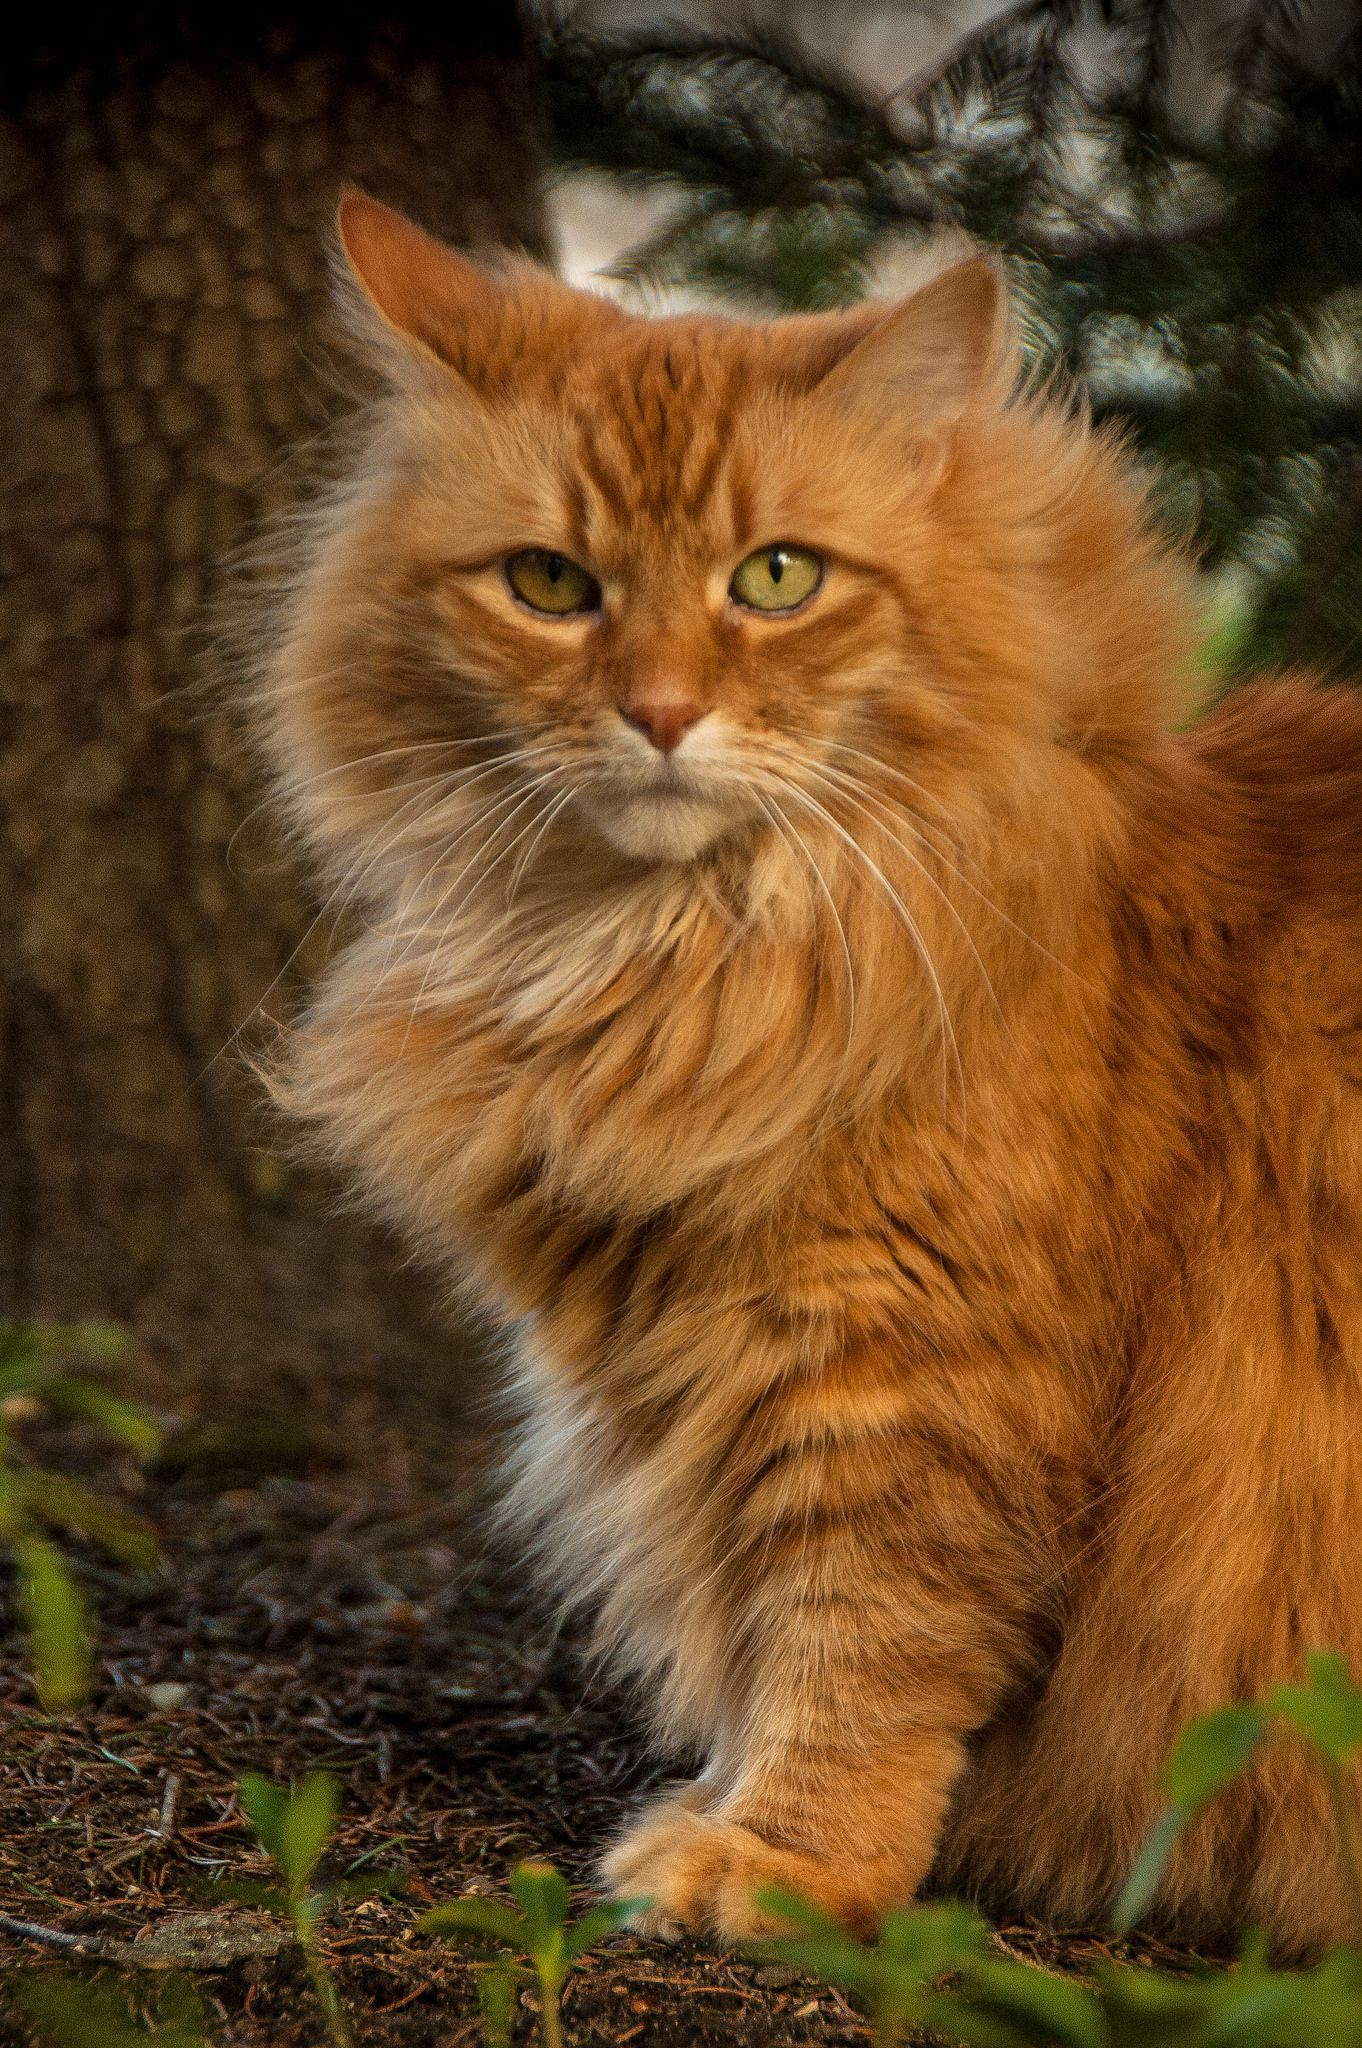 My Orange Cat in 2020 (With images) Beautiful cats